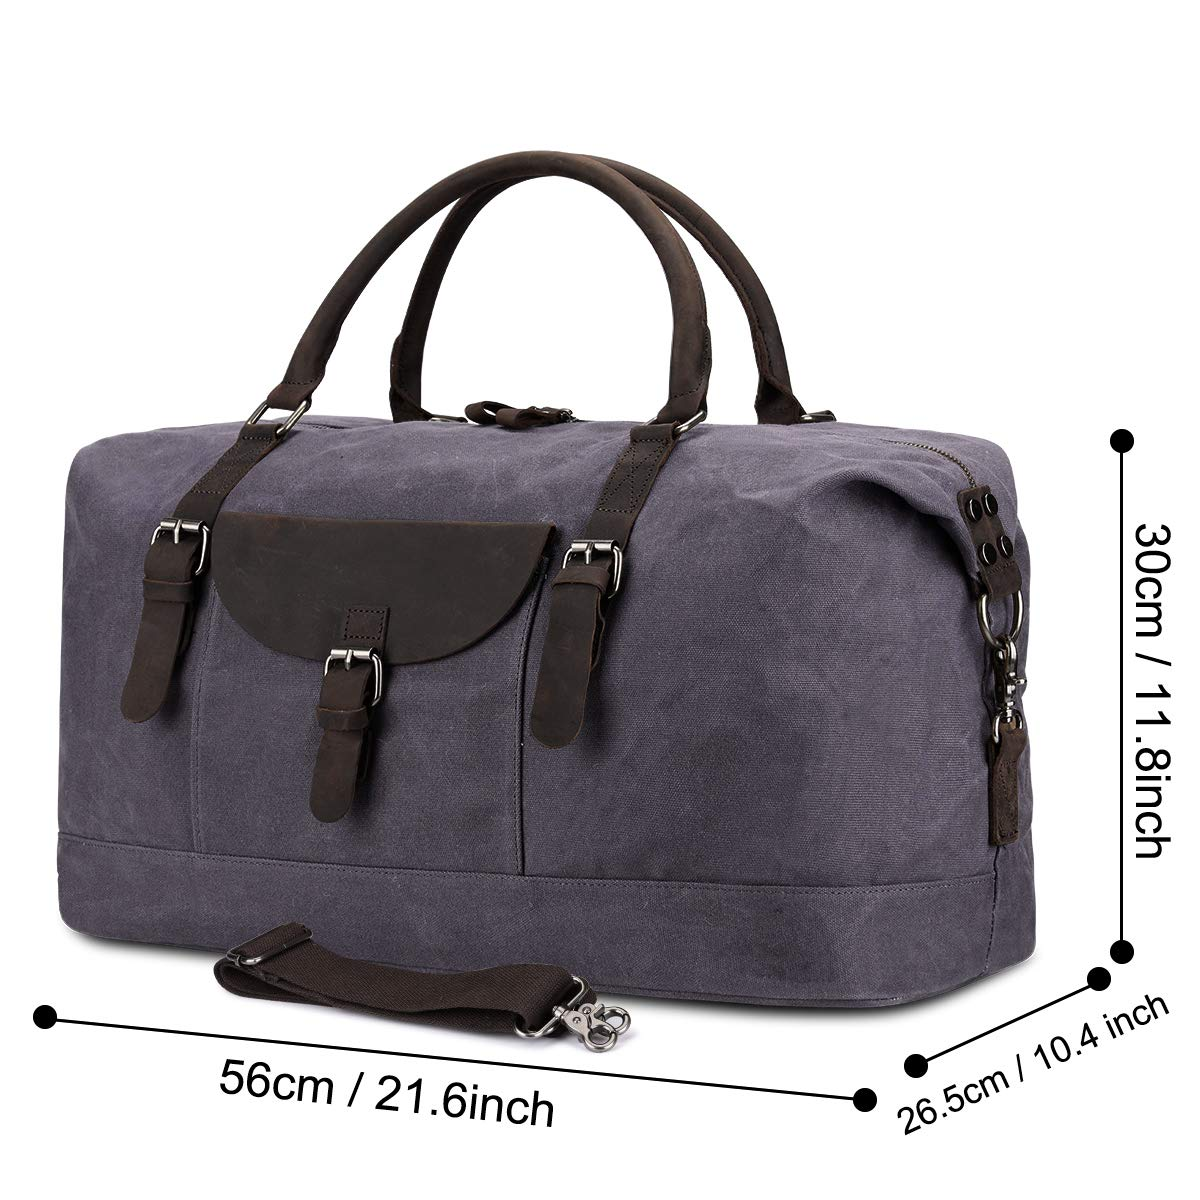 14c1c3839004 S-Zone Mens Oversized Travel Holdall Duffel Bag Waterproof Large Canvas  Weekender Vintage Leather Totes Overnight Women Hand Bag  Amazon.co.uk   Luggage